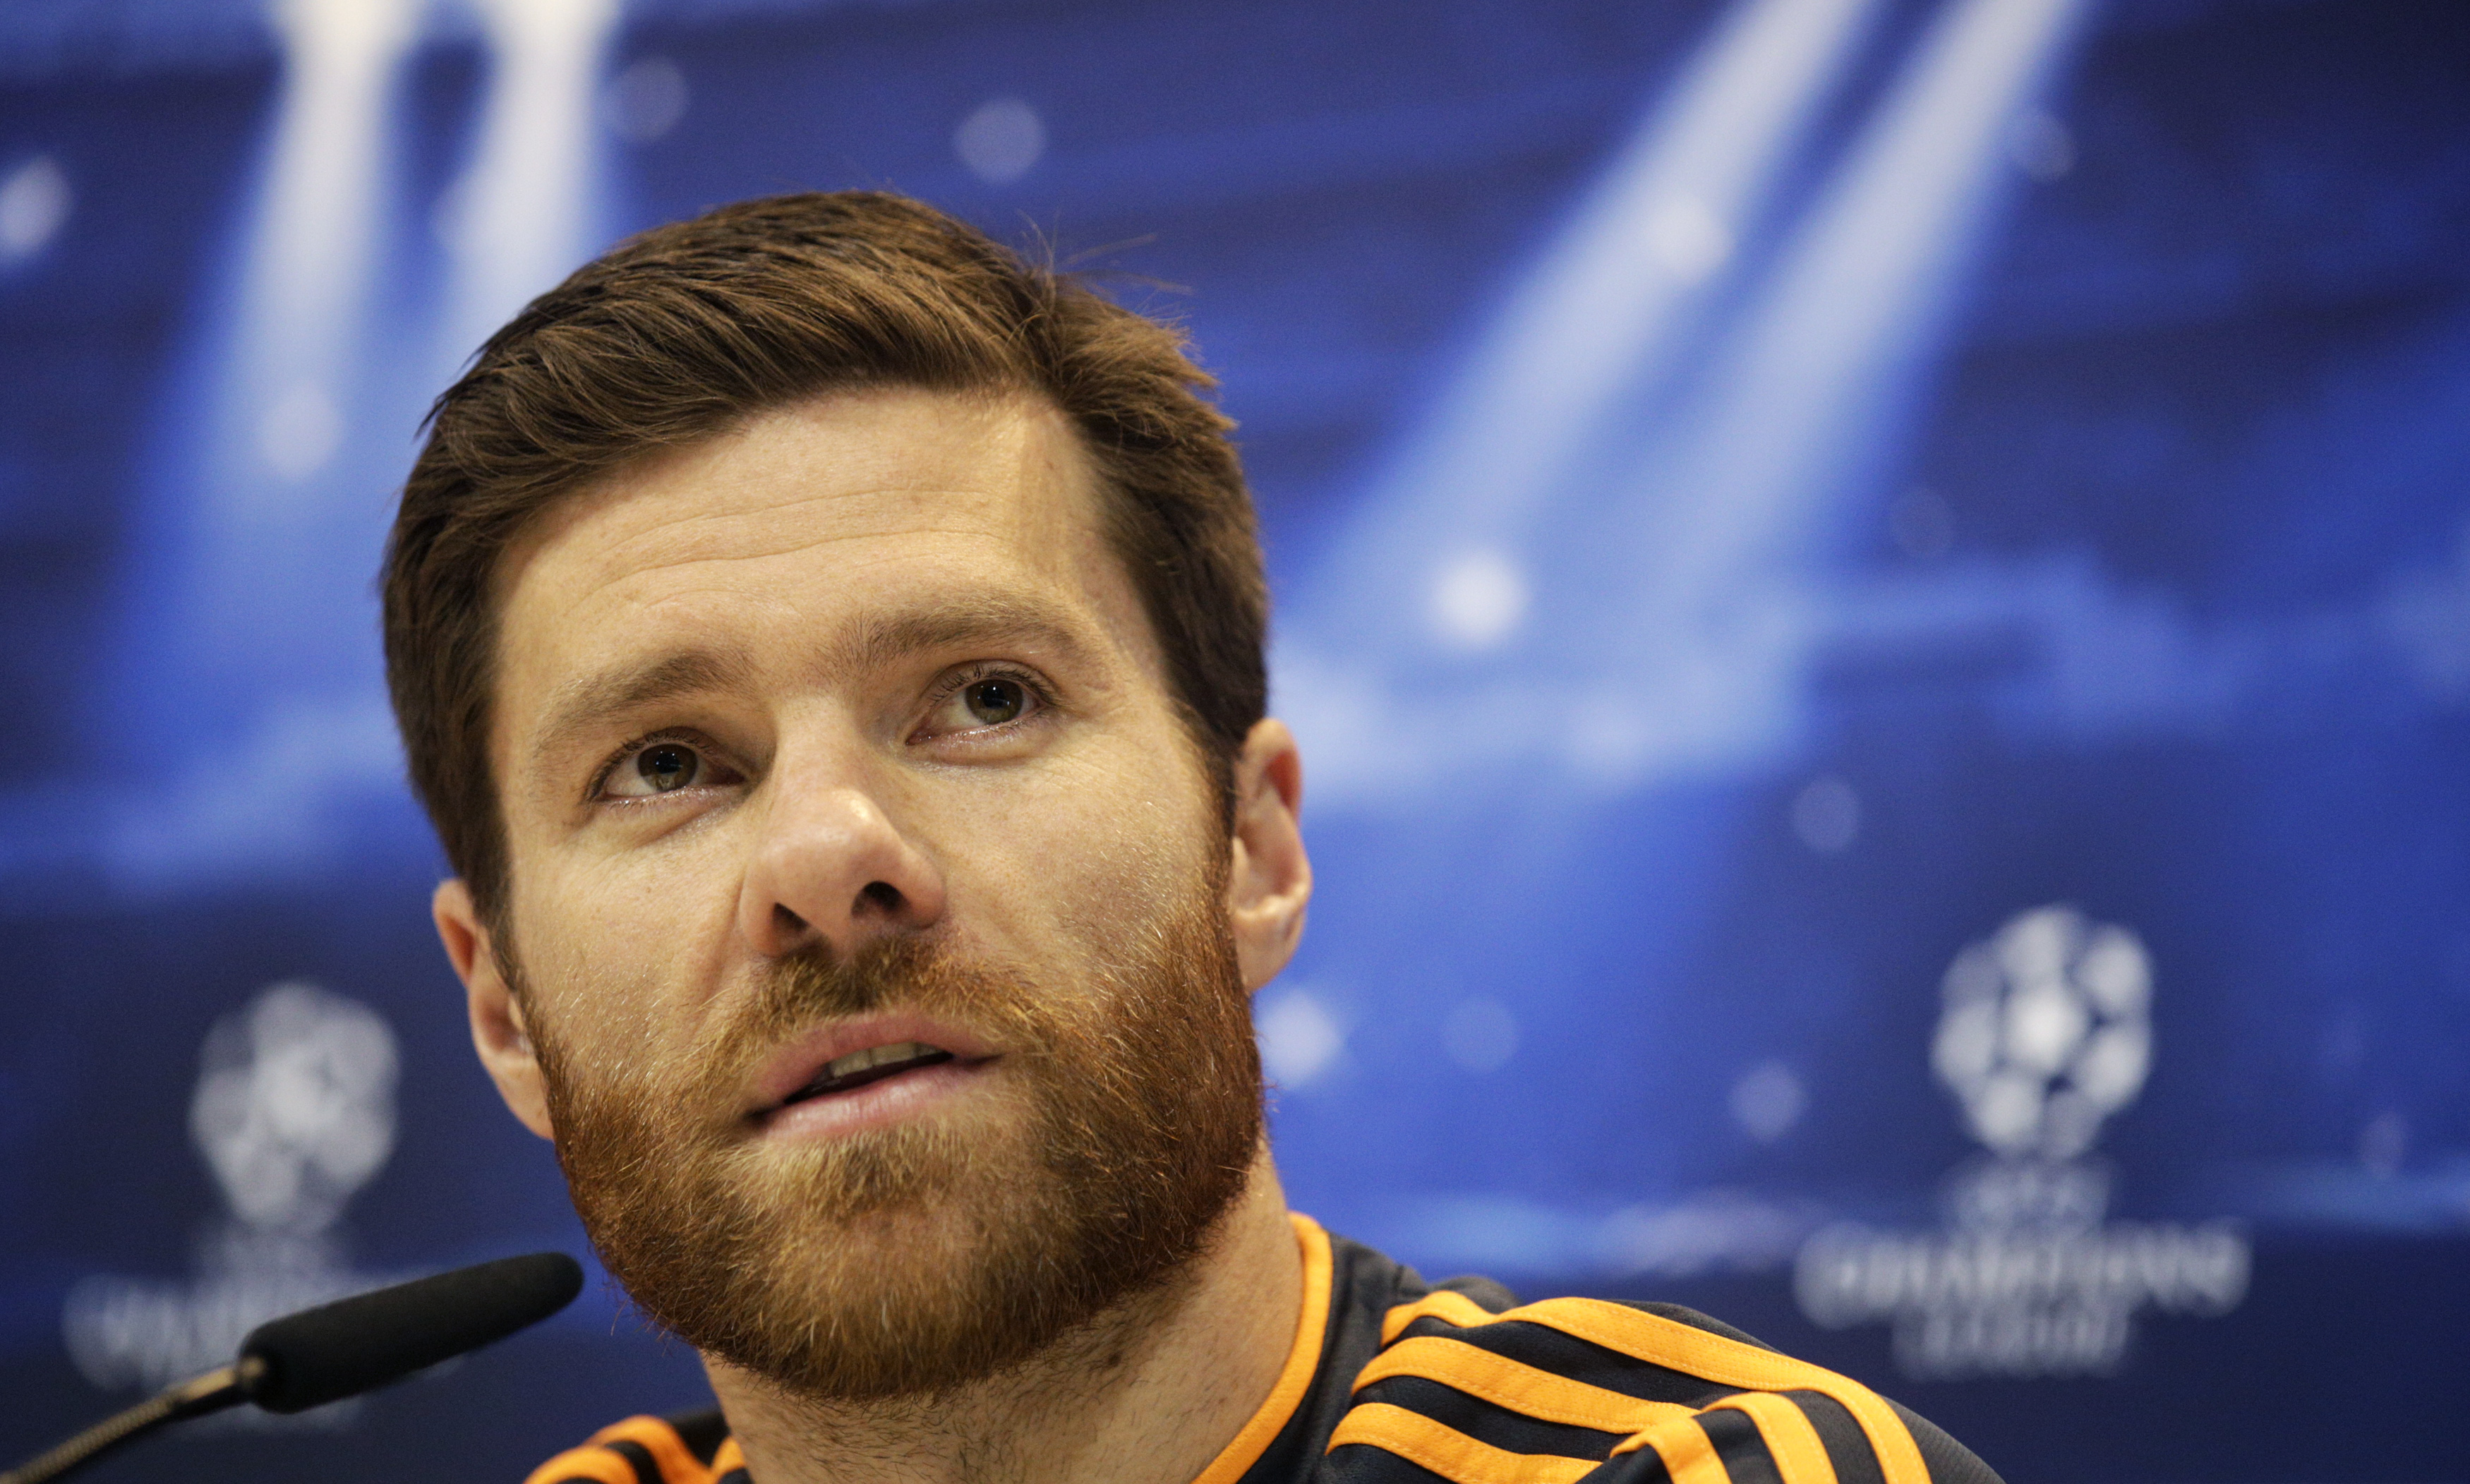 Xabi Alonso Retires And Transfers To Bayern Munich The Same Day